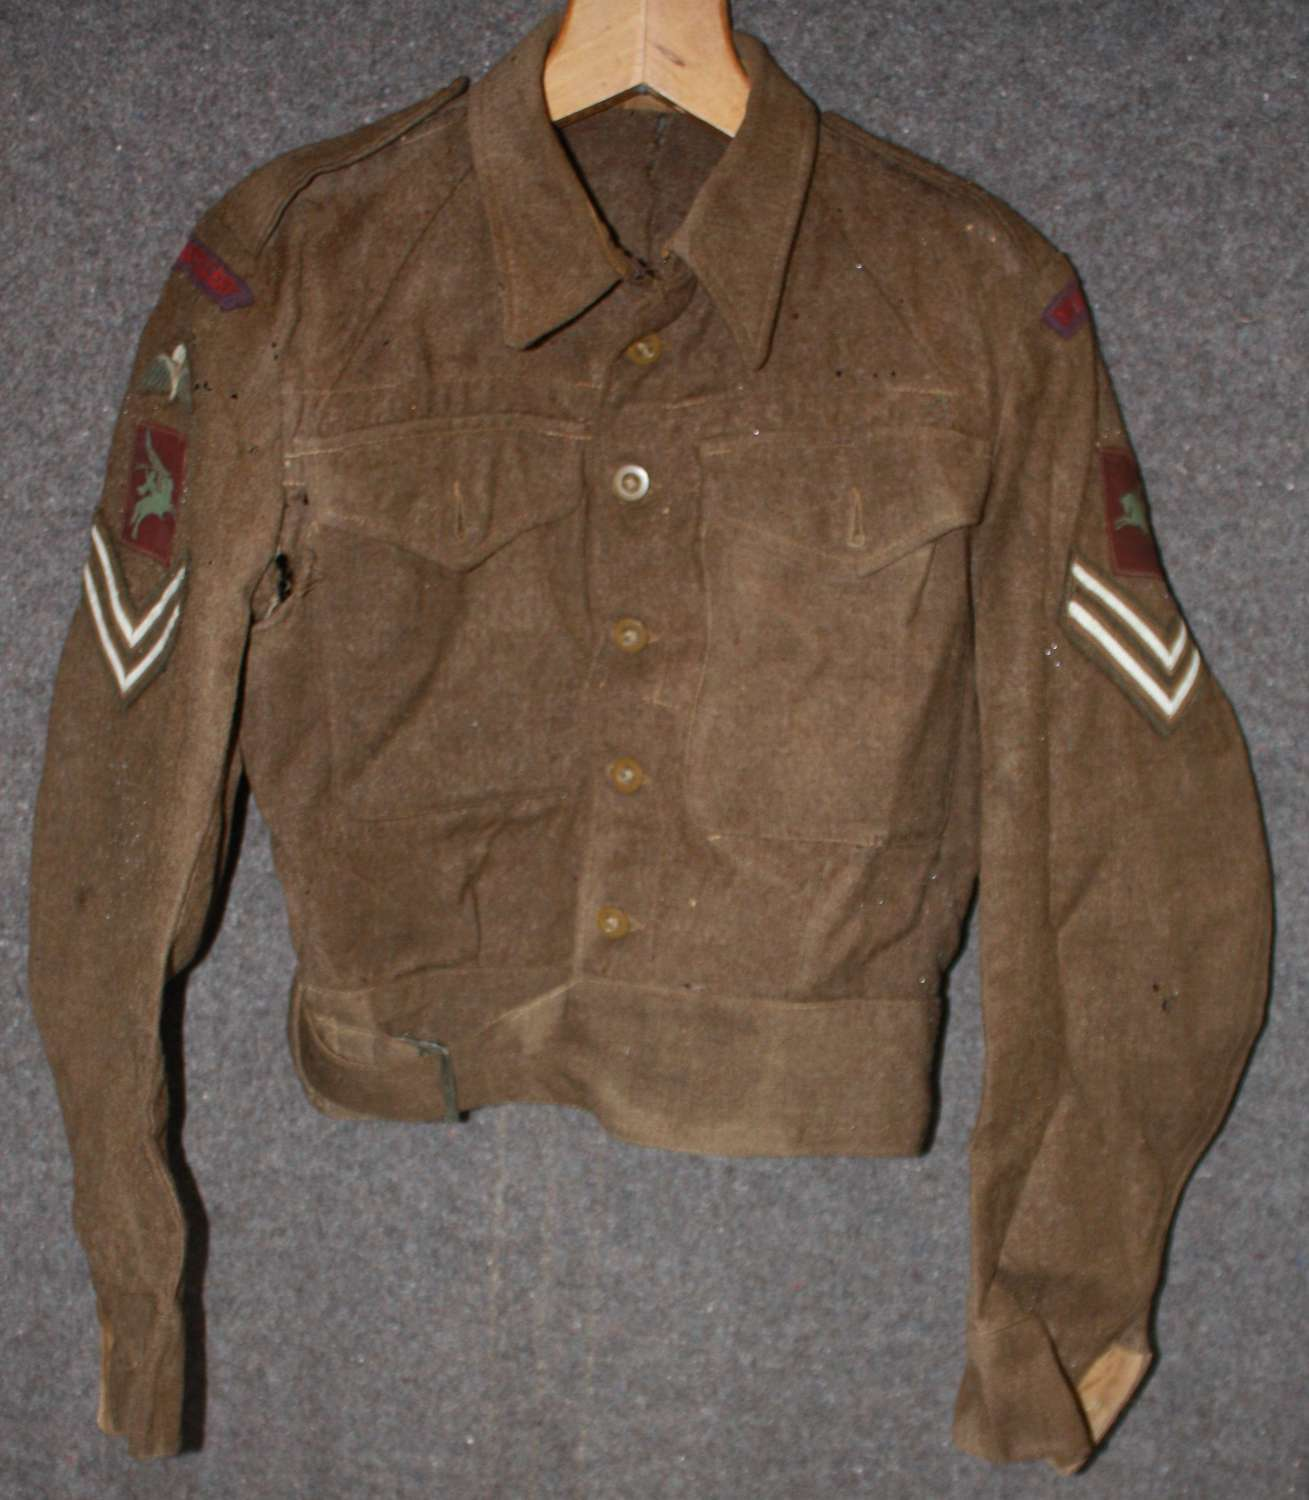 AN ORIGINAL BUT HEAVILY MOTHED RA AIRBORNE FORCES BD JACKET